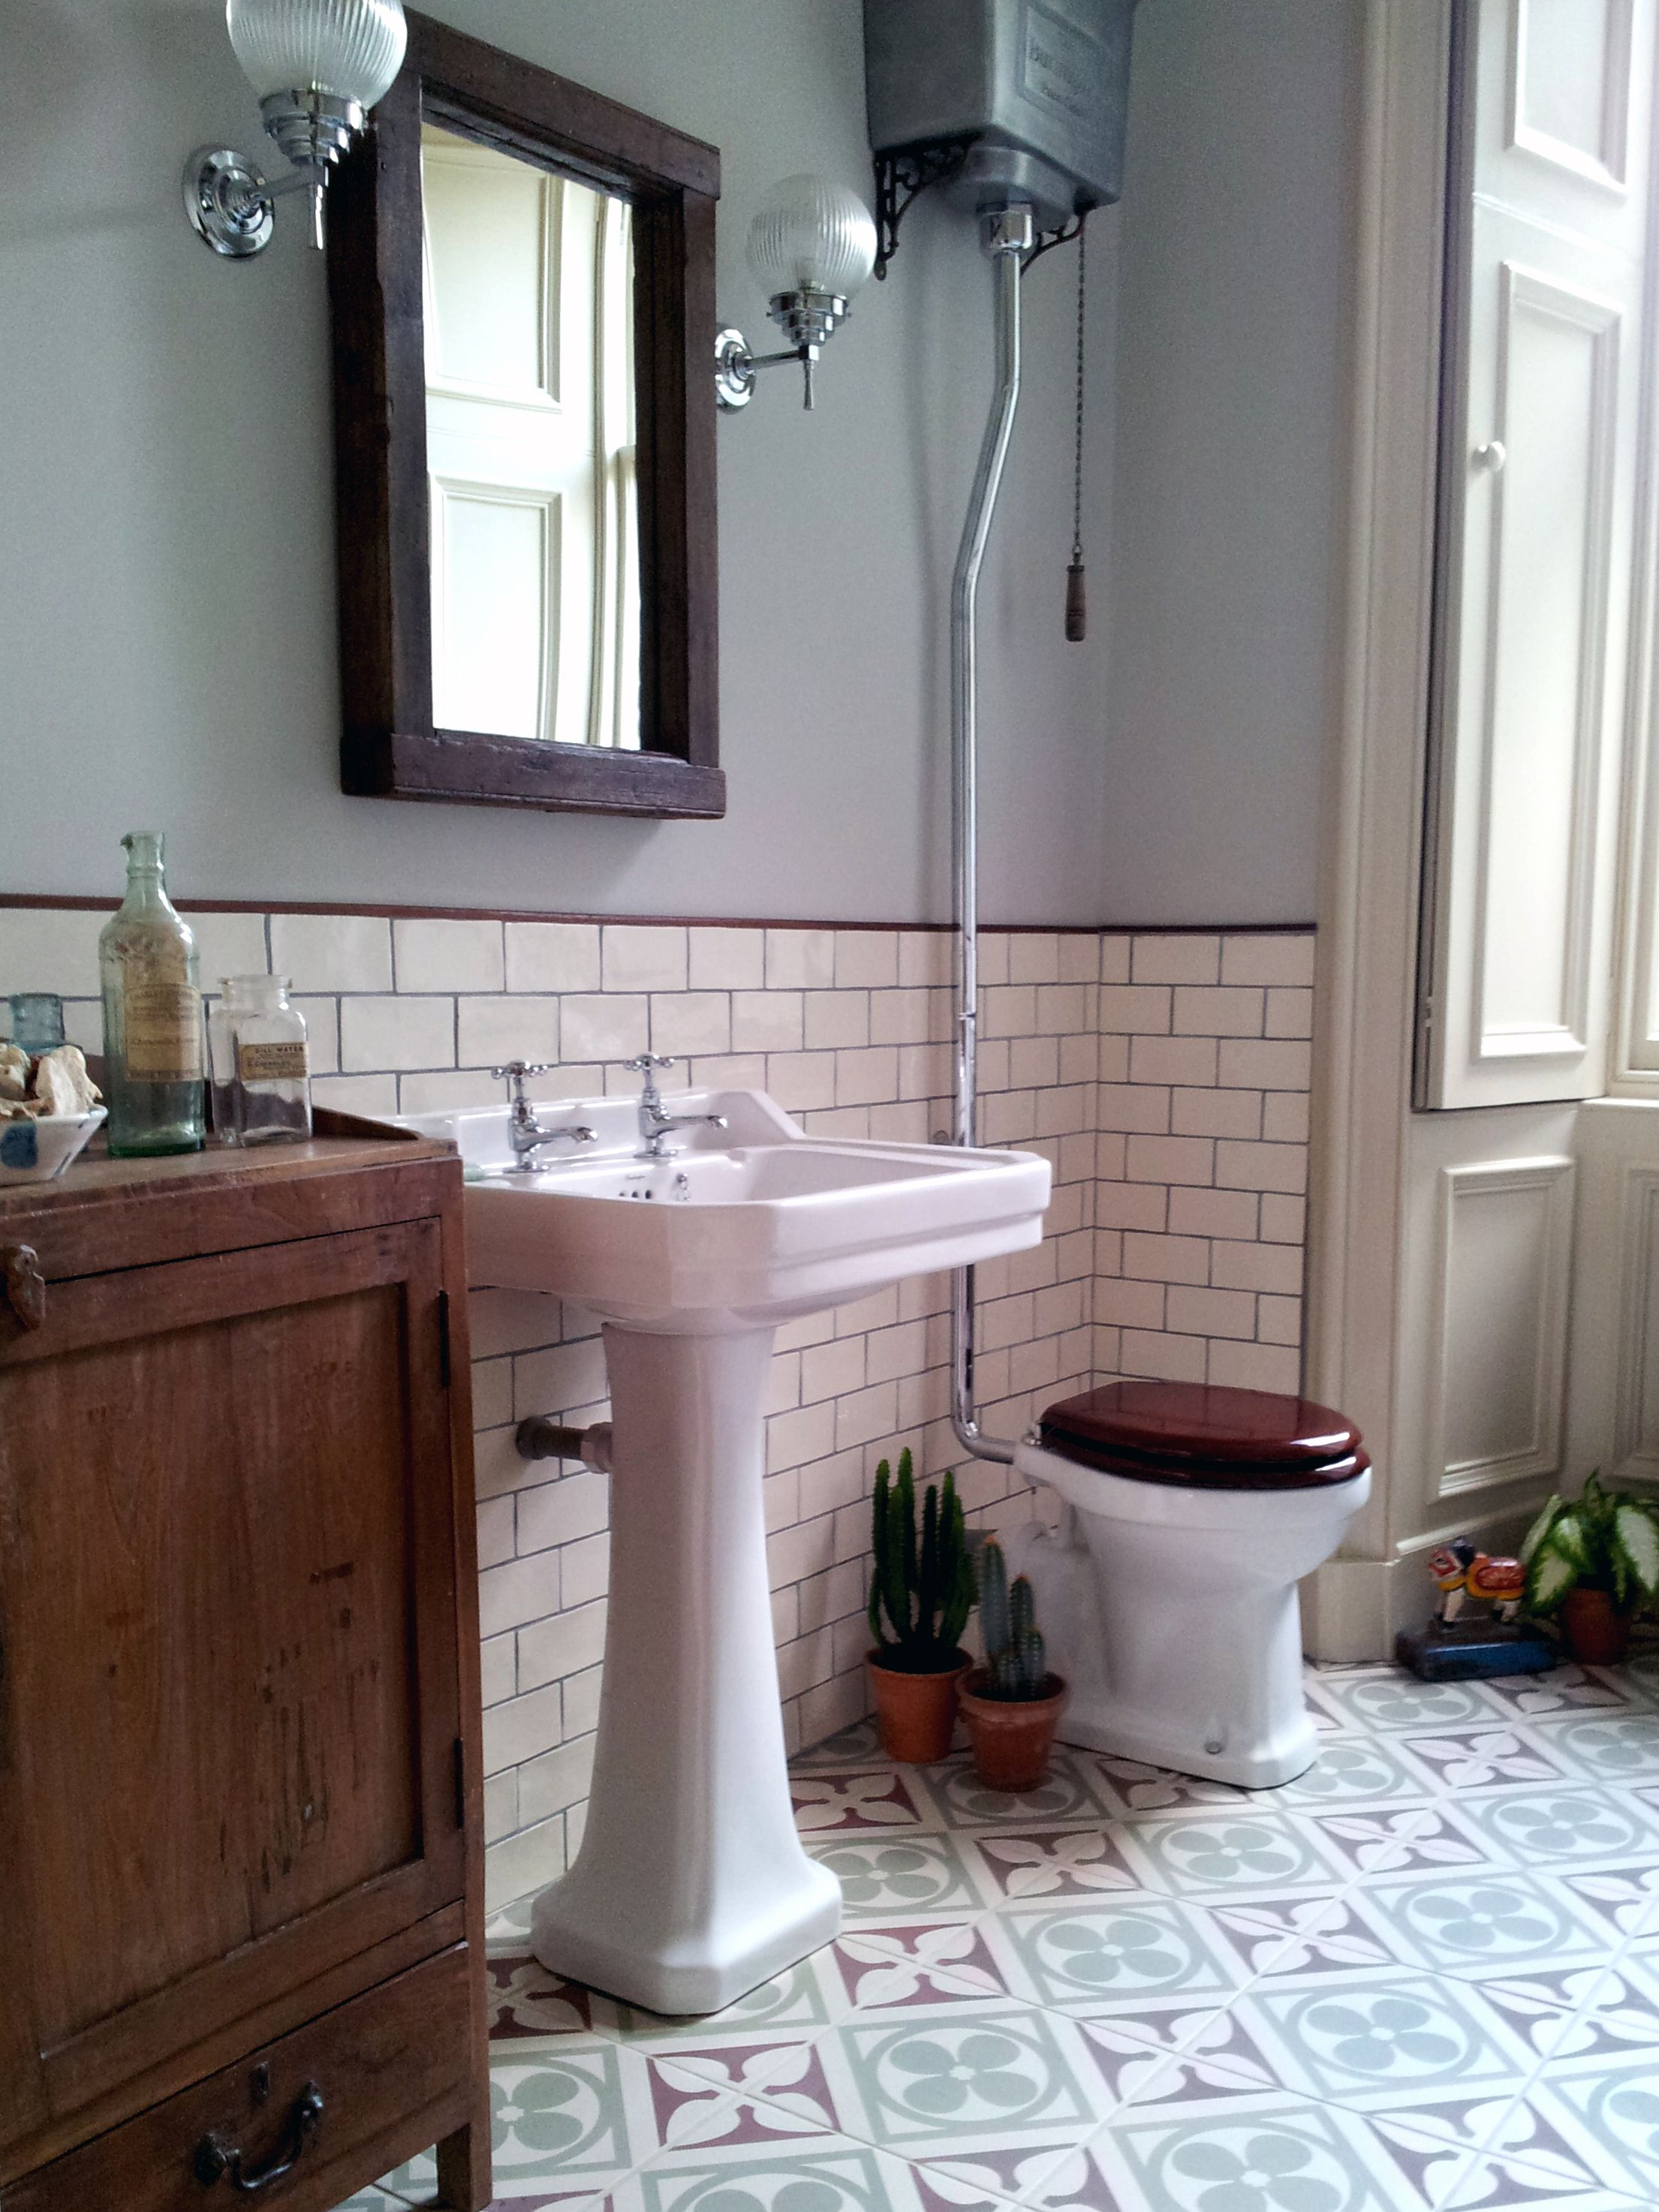 Latest Posts Under Bathroom Dimensions Bathroom Design - Bike bathroom sink ideal modern bathroom design vintage style